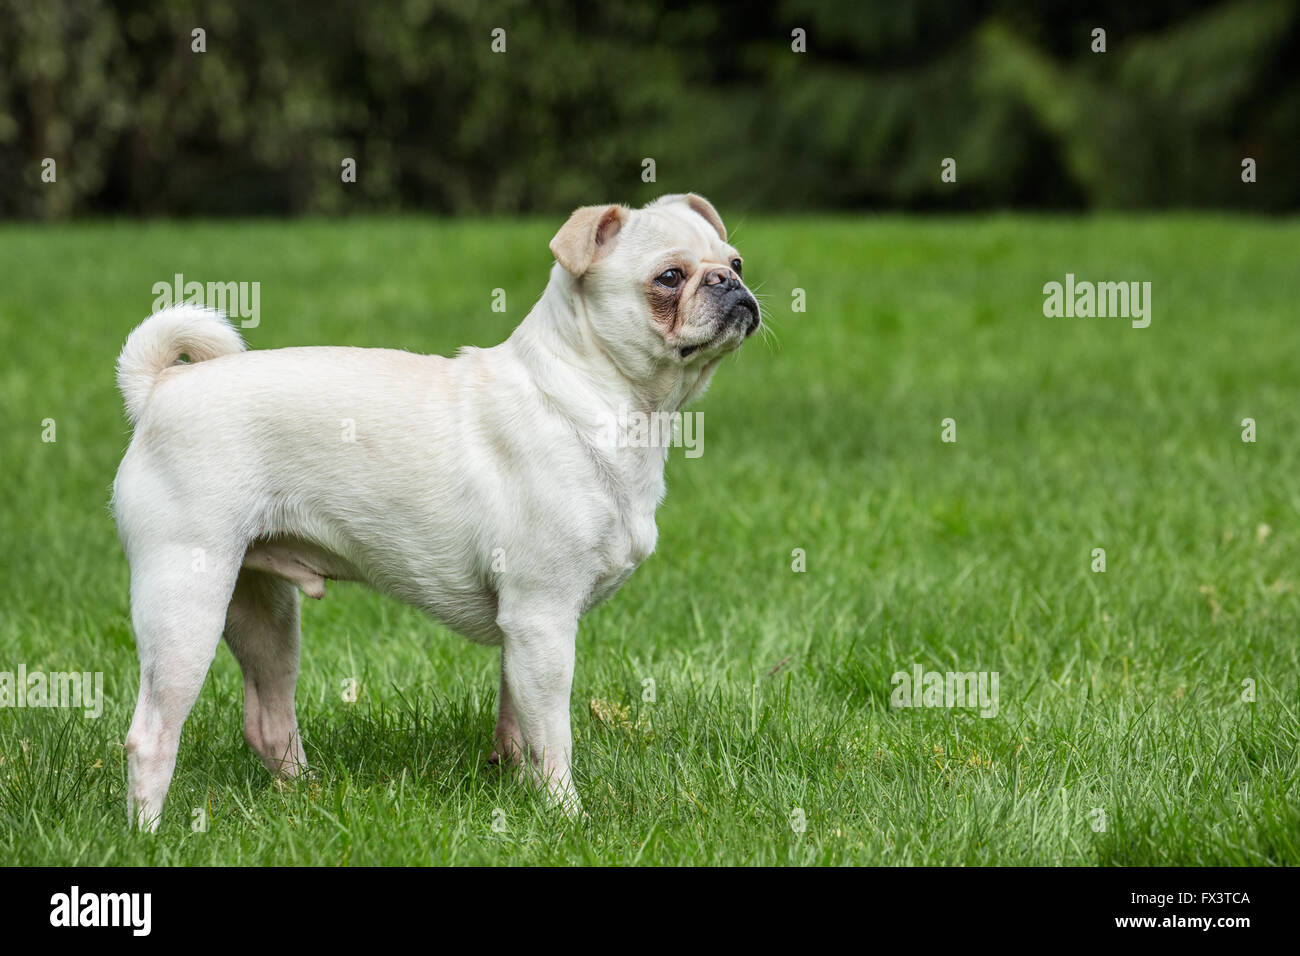 Lewee, a white Pug, posing in his yard in Redmond, Washington, USA - Stock Image